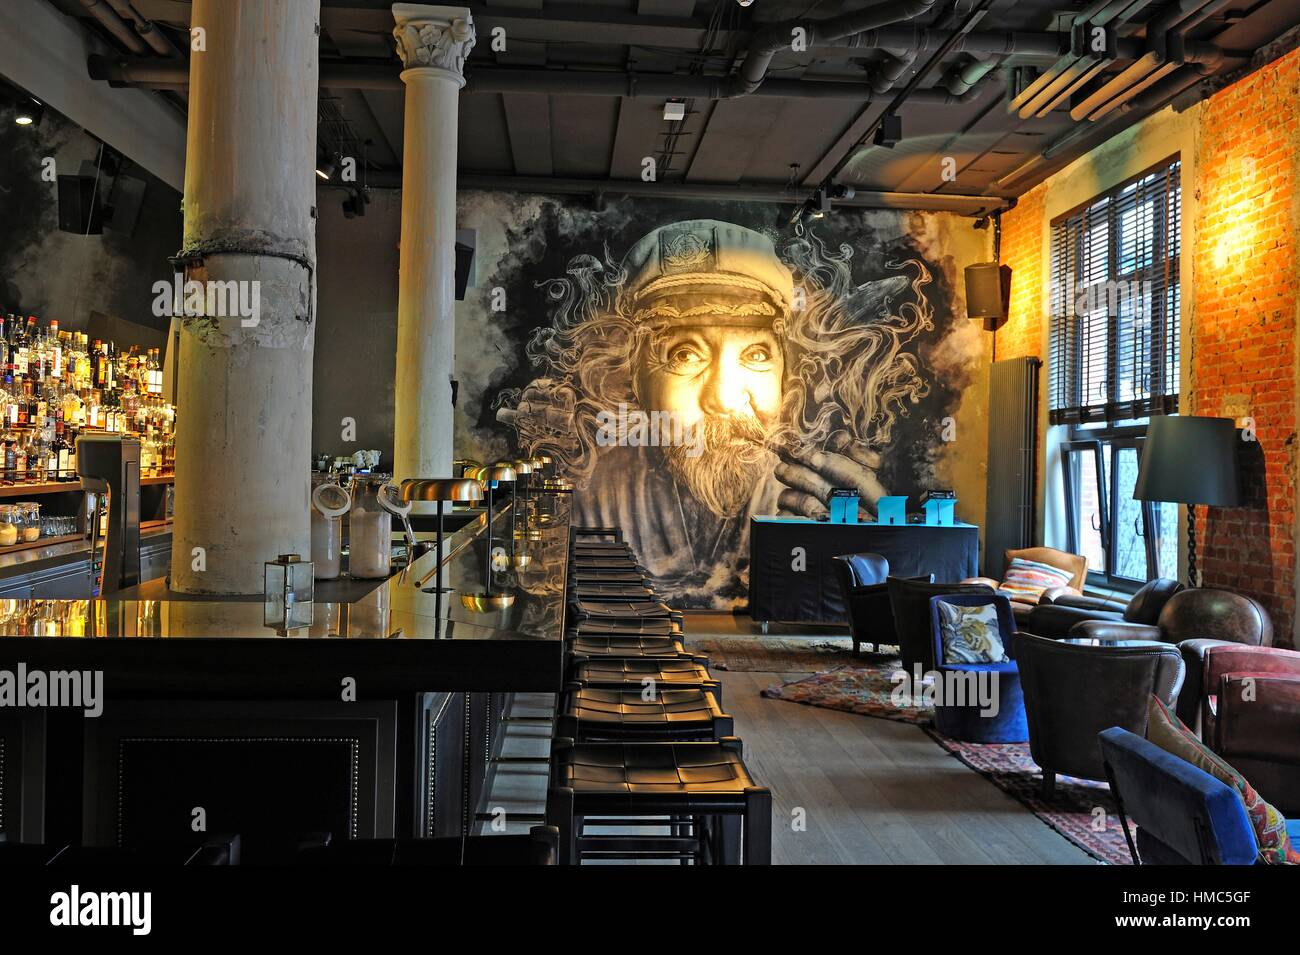 Boilerman, bar of the 25hours Hotel Hamburg Altes Hafenamt, Osakaallee 12, HafenCity quarter, Hamburg, Germany, - Stock Image